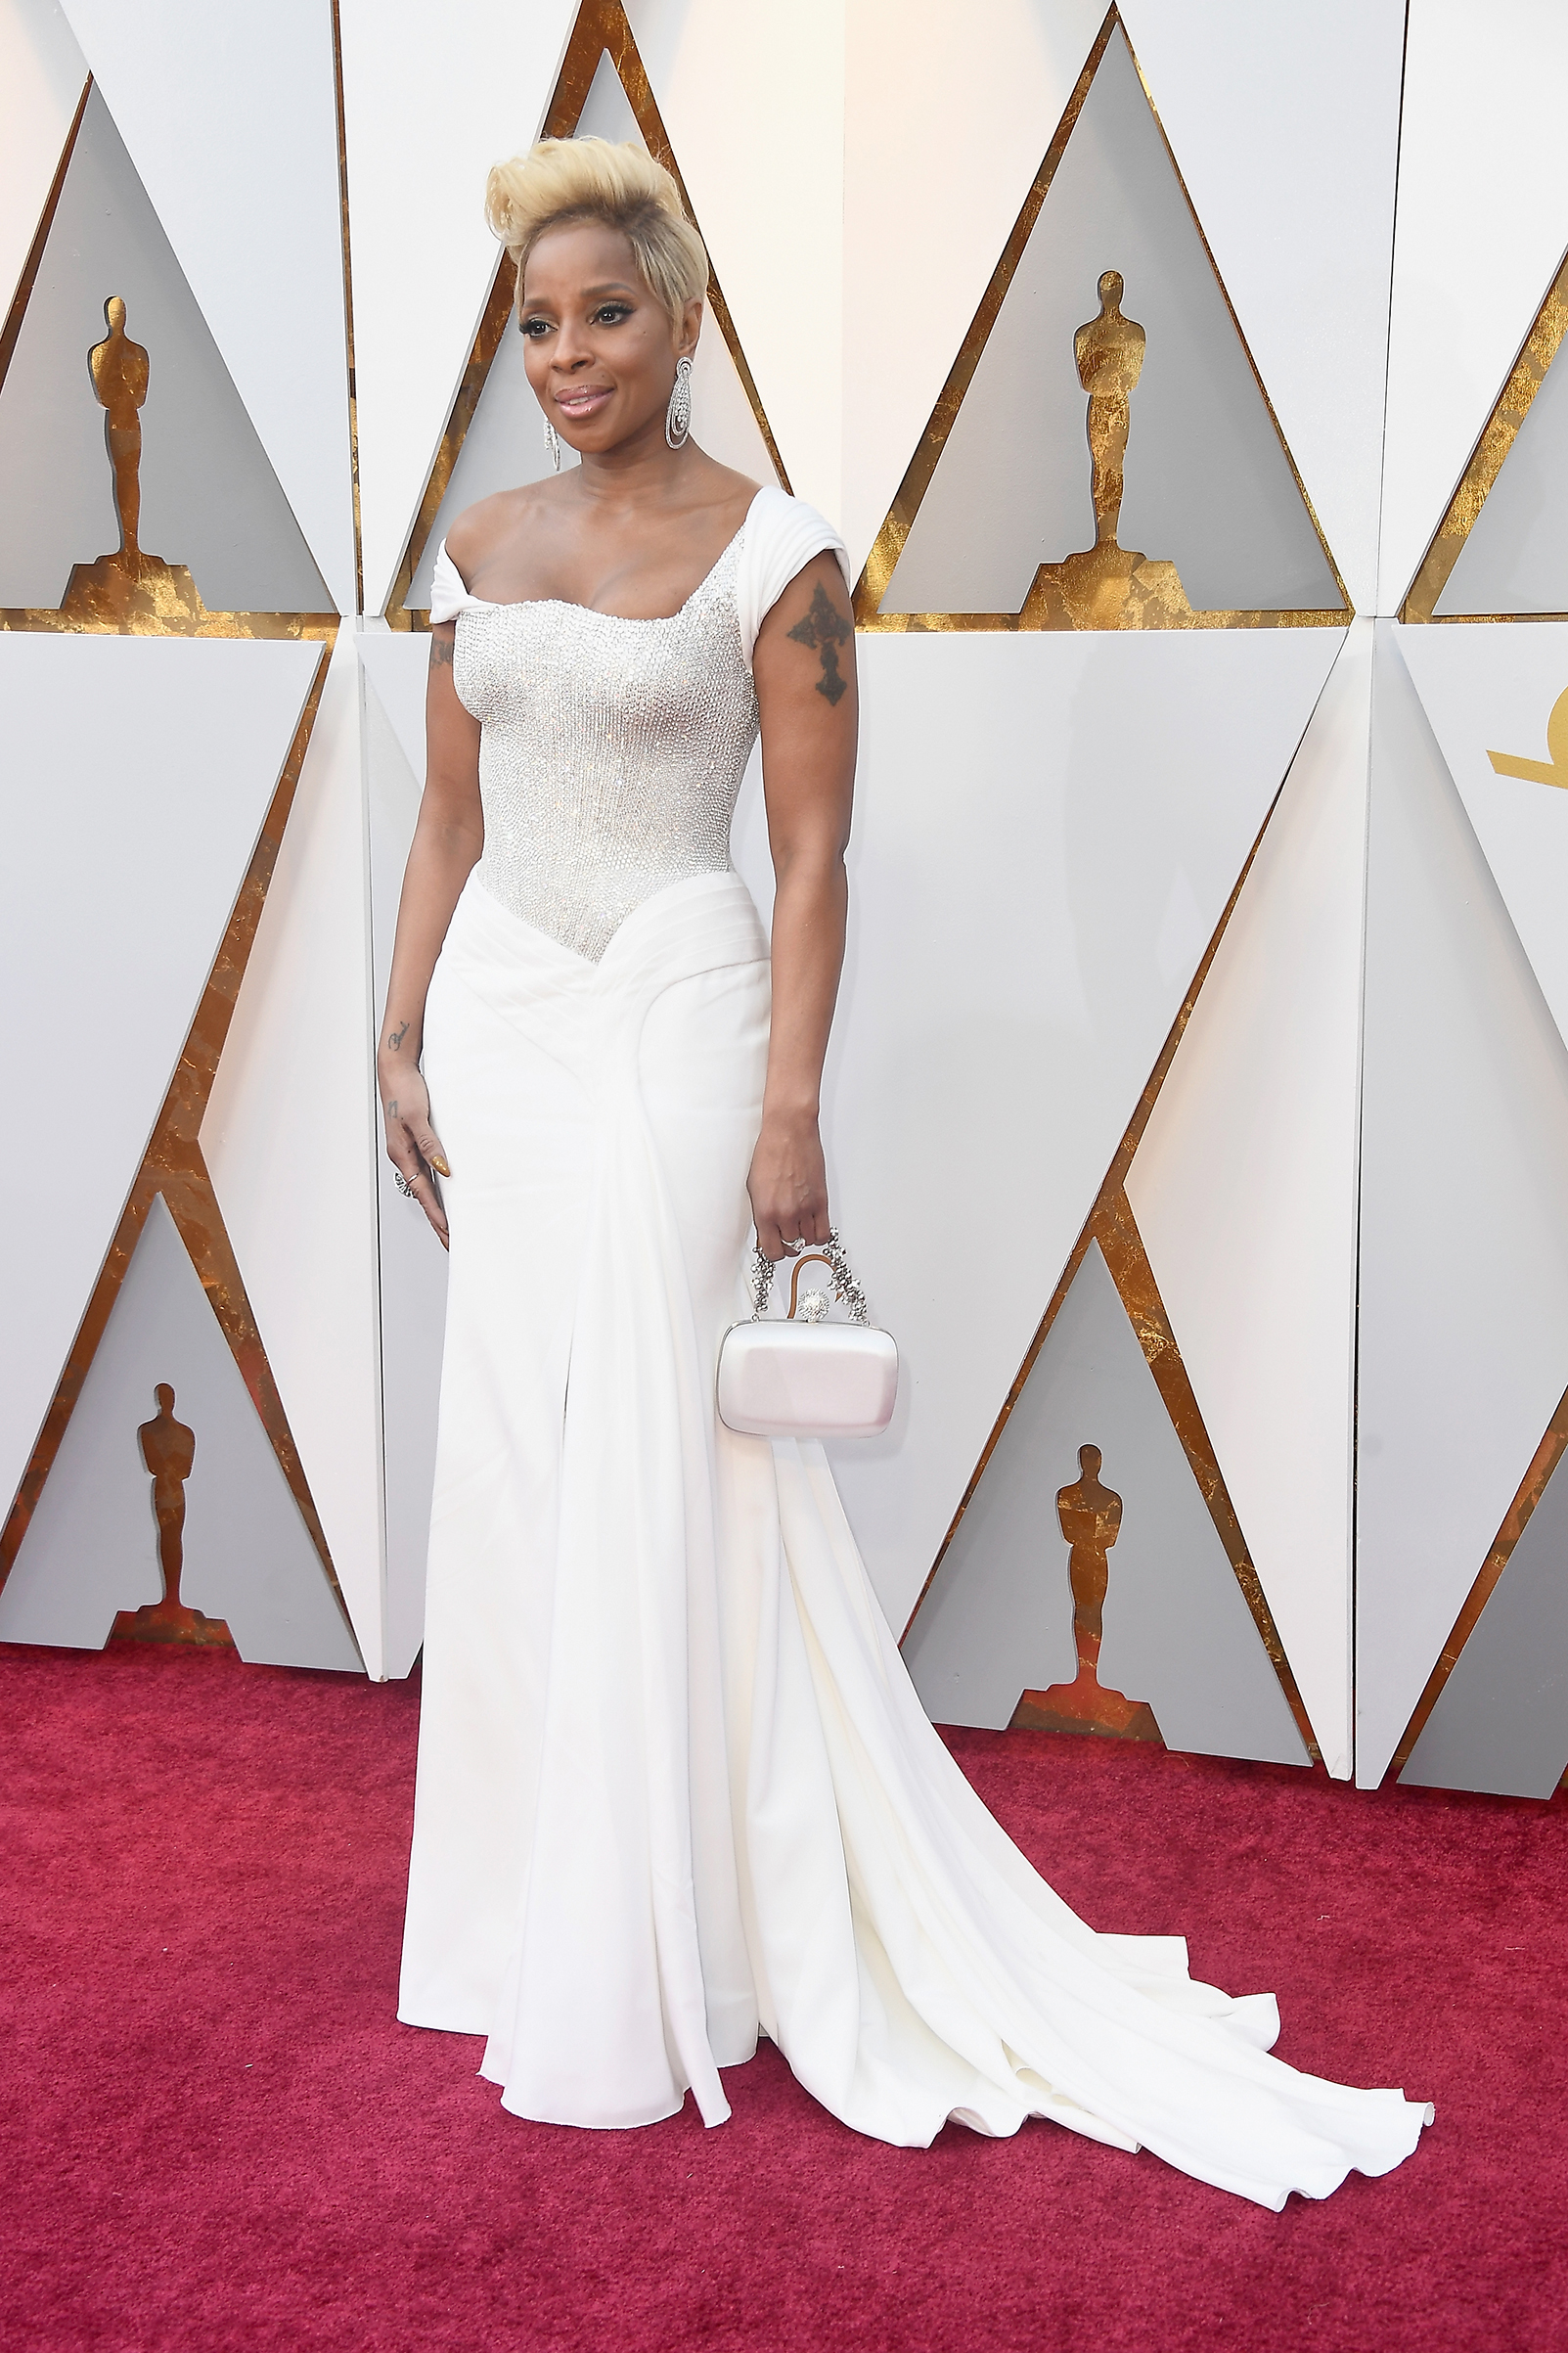 Mary J. Blige attends the 90th Annual Academy Awards at Hollywood & Highland Center on March 4.